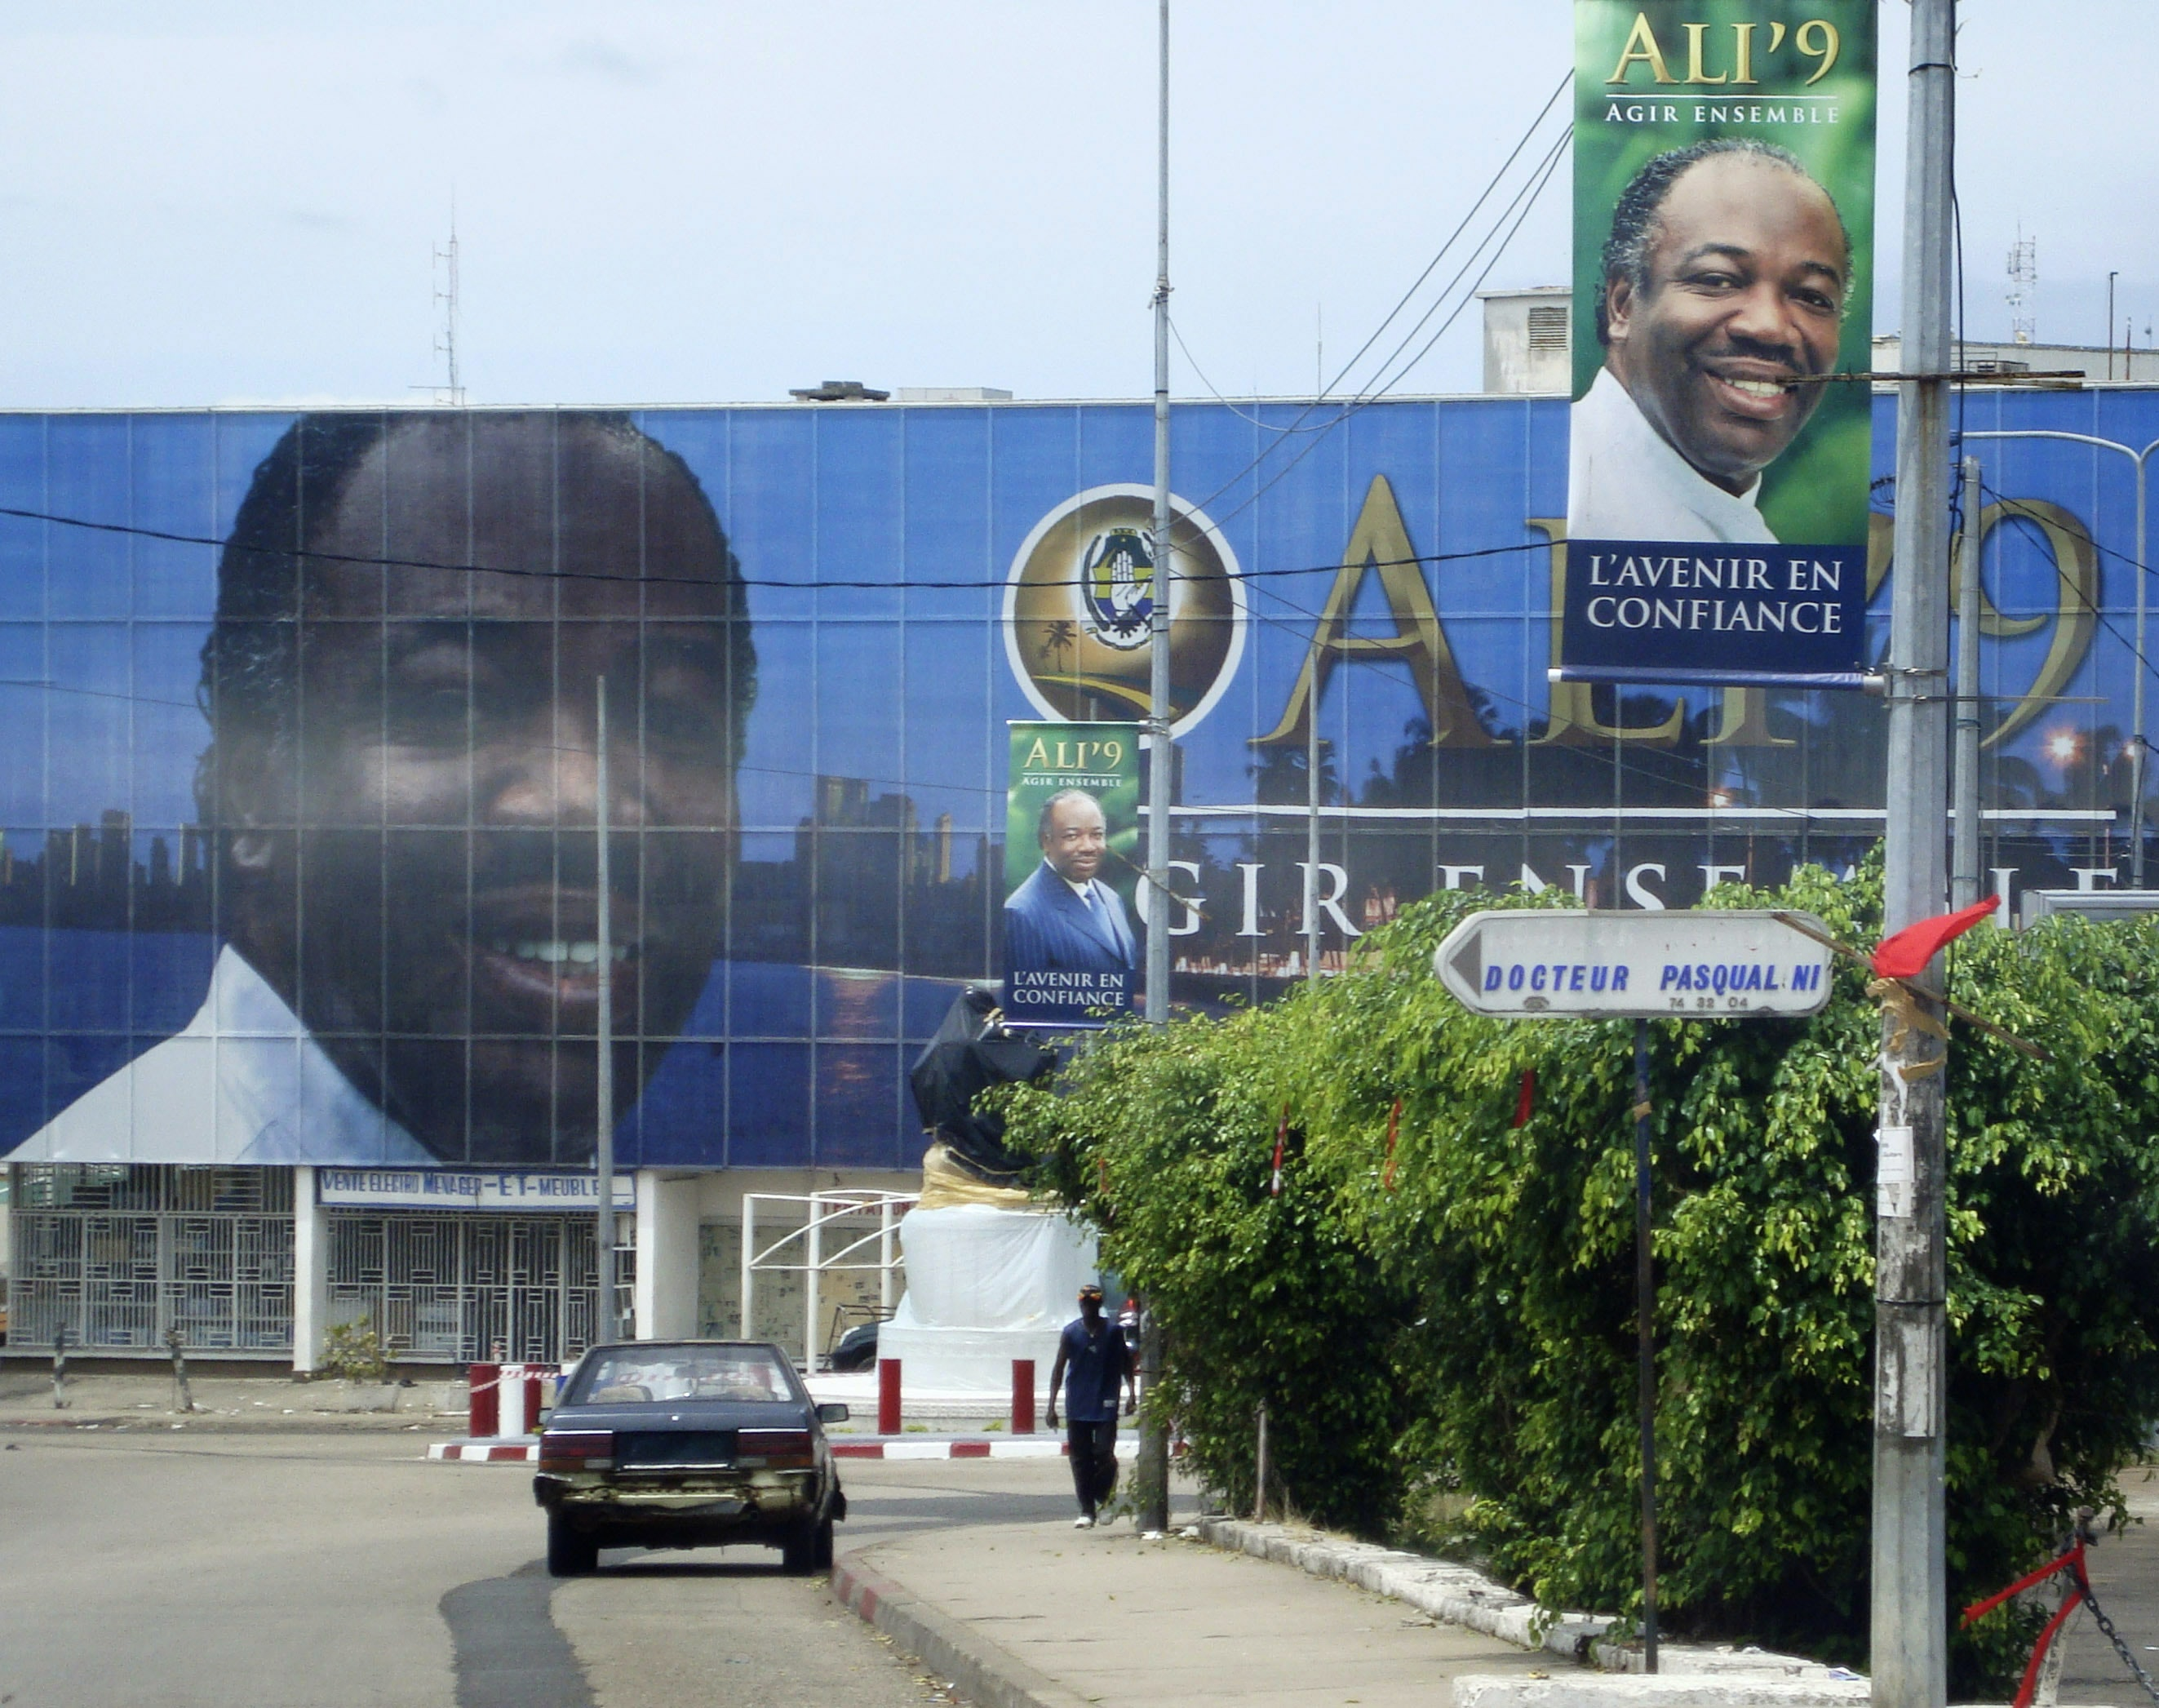 As its ruling dynasty withers, Gabon – a US ally and guardian of French influence in Africa – ponders its future